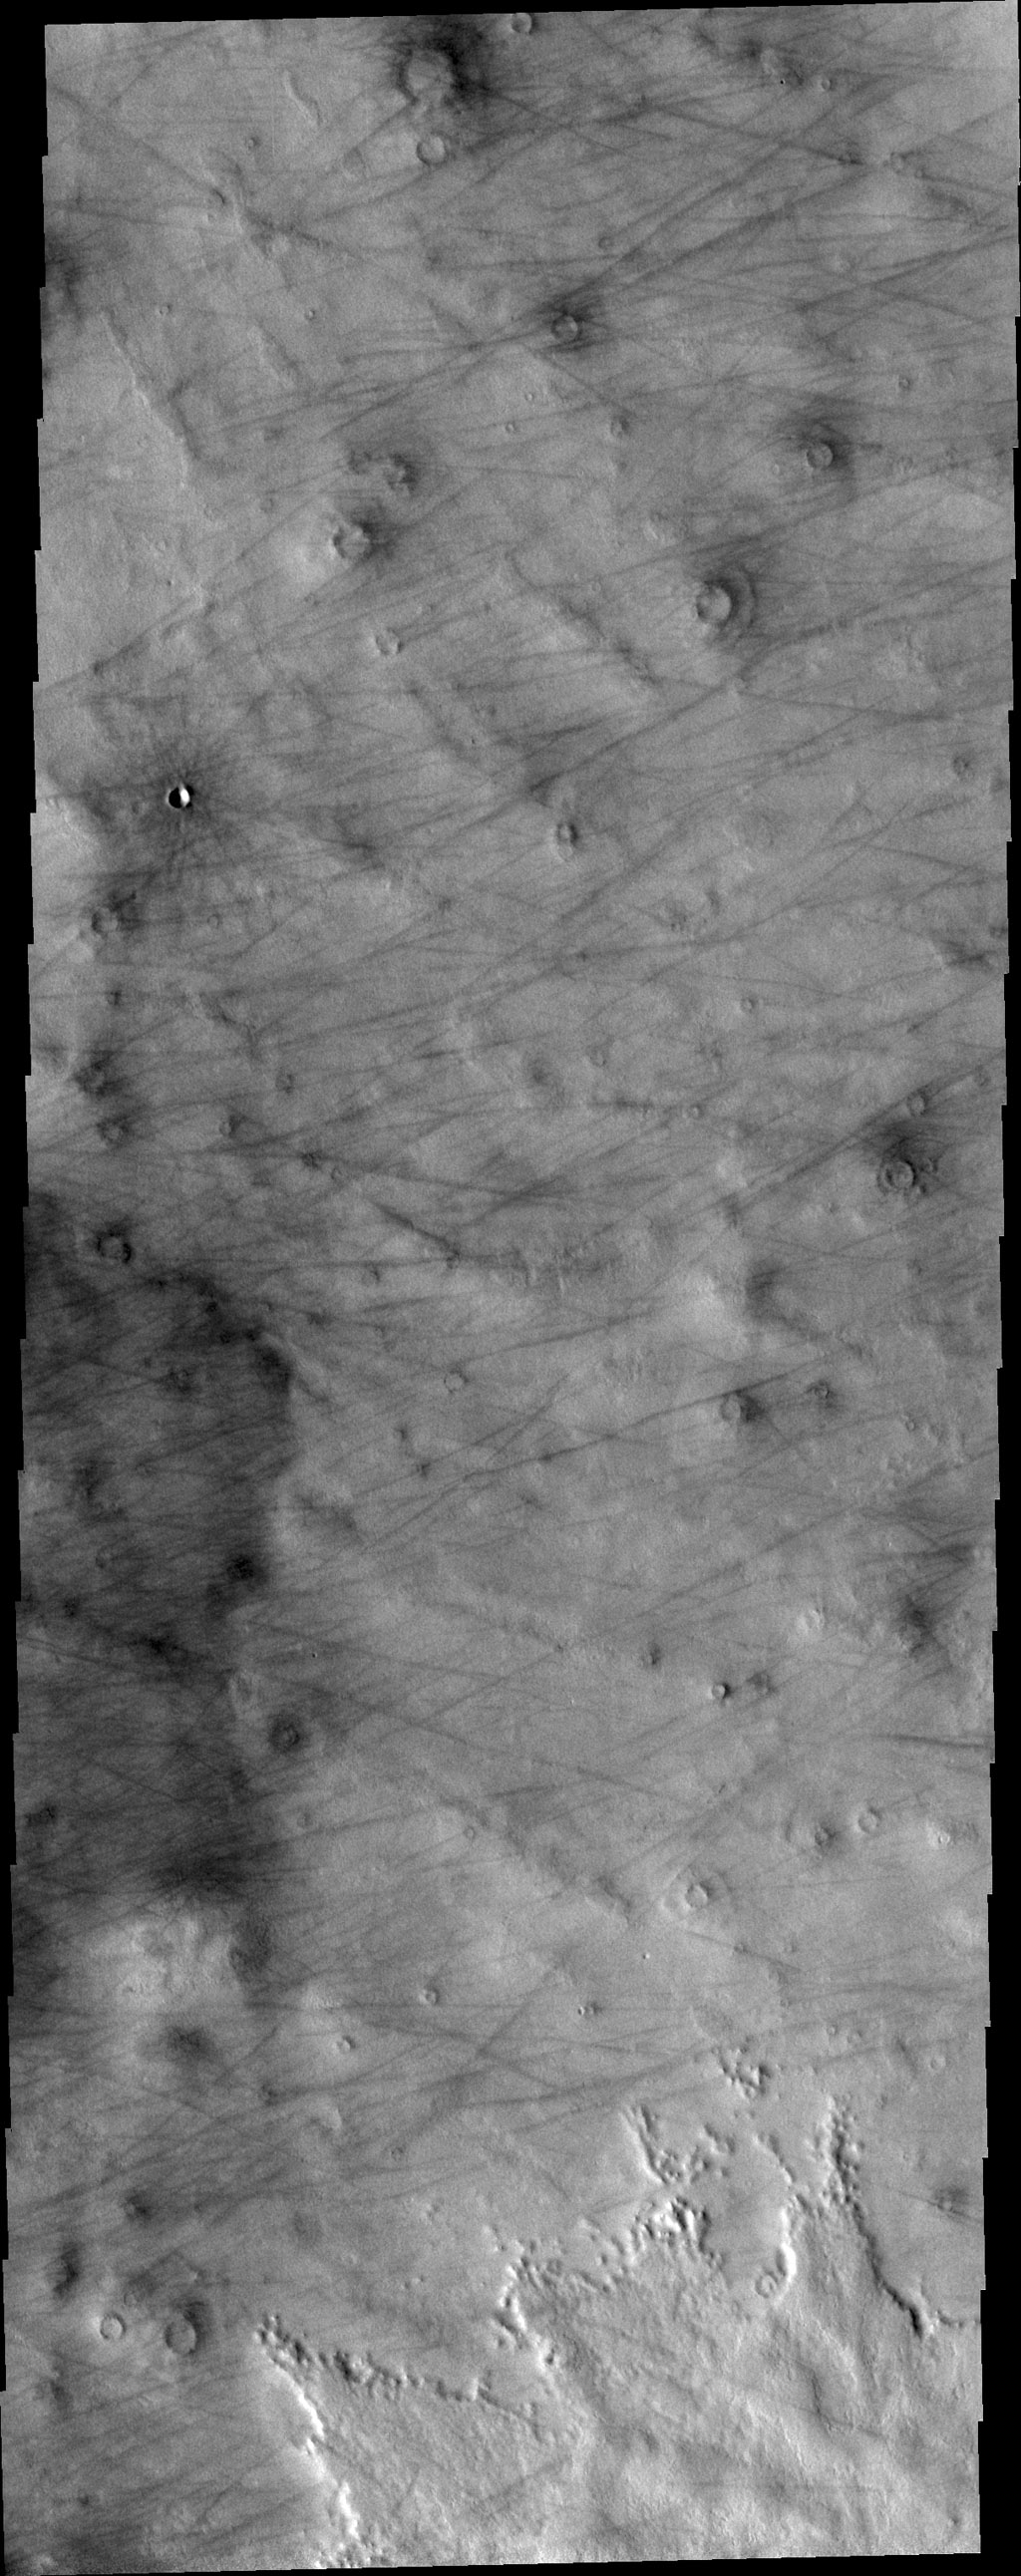 This image from NASA's 2001 Mars Odyssey spacecraft of Daedalia Planum shows the termination or end of a single flow. In this case it is the end of the brighter/rougher flow on the right side of the image.